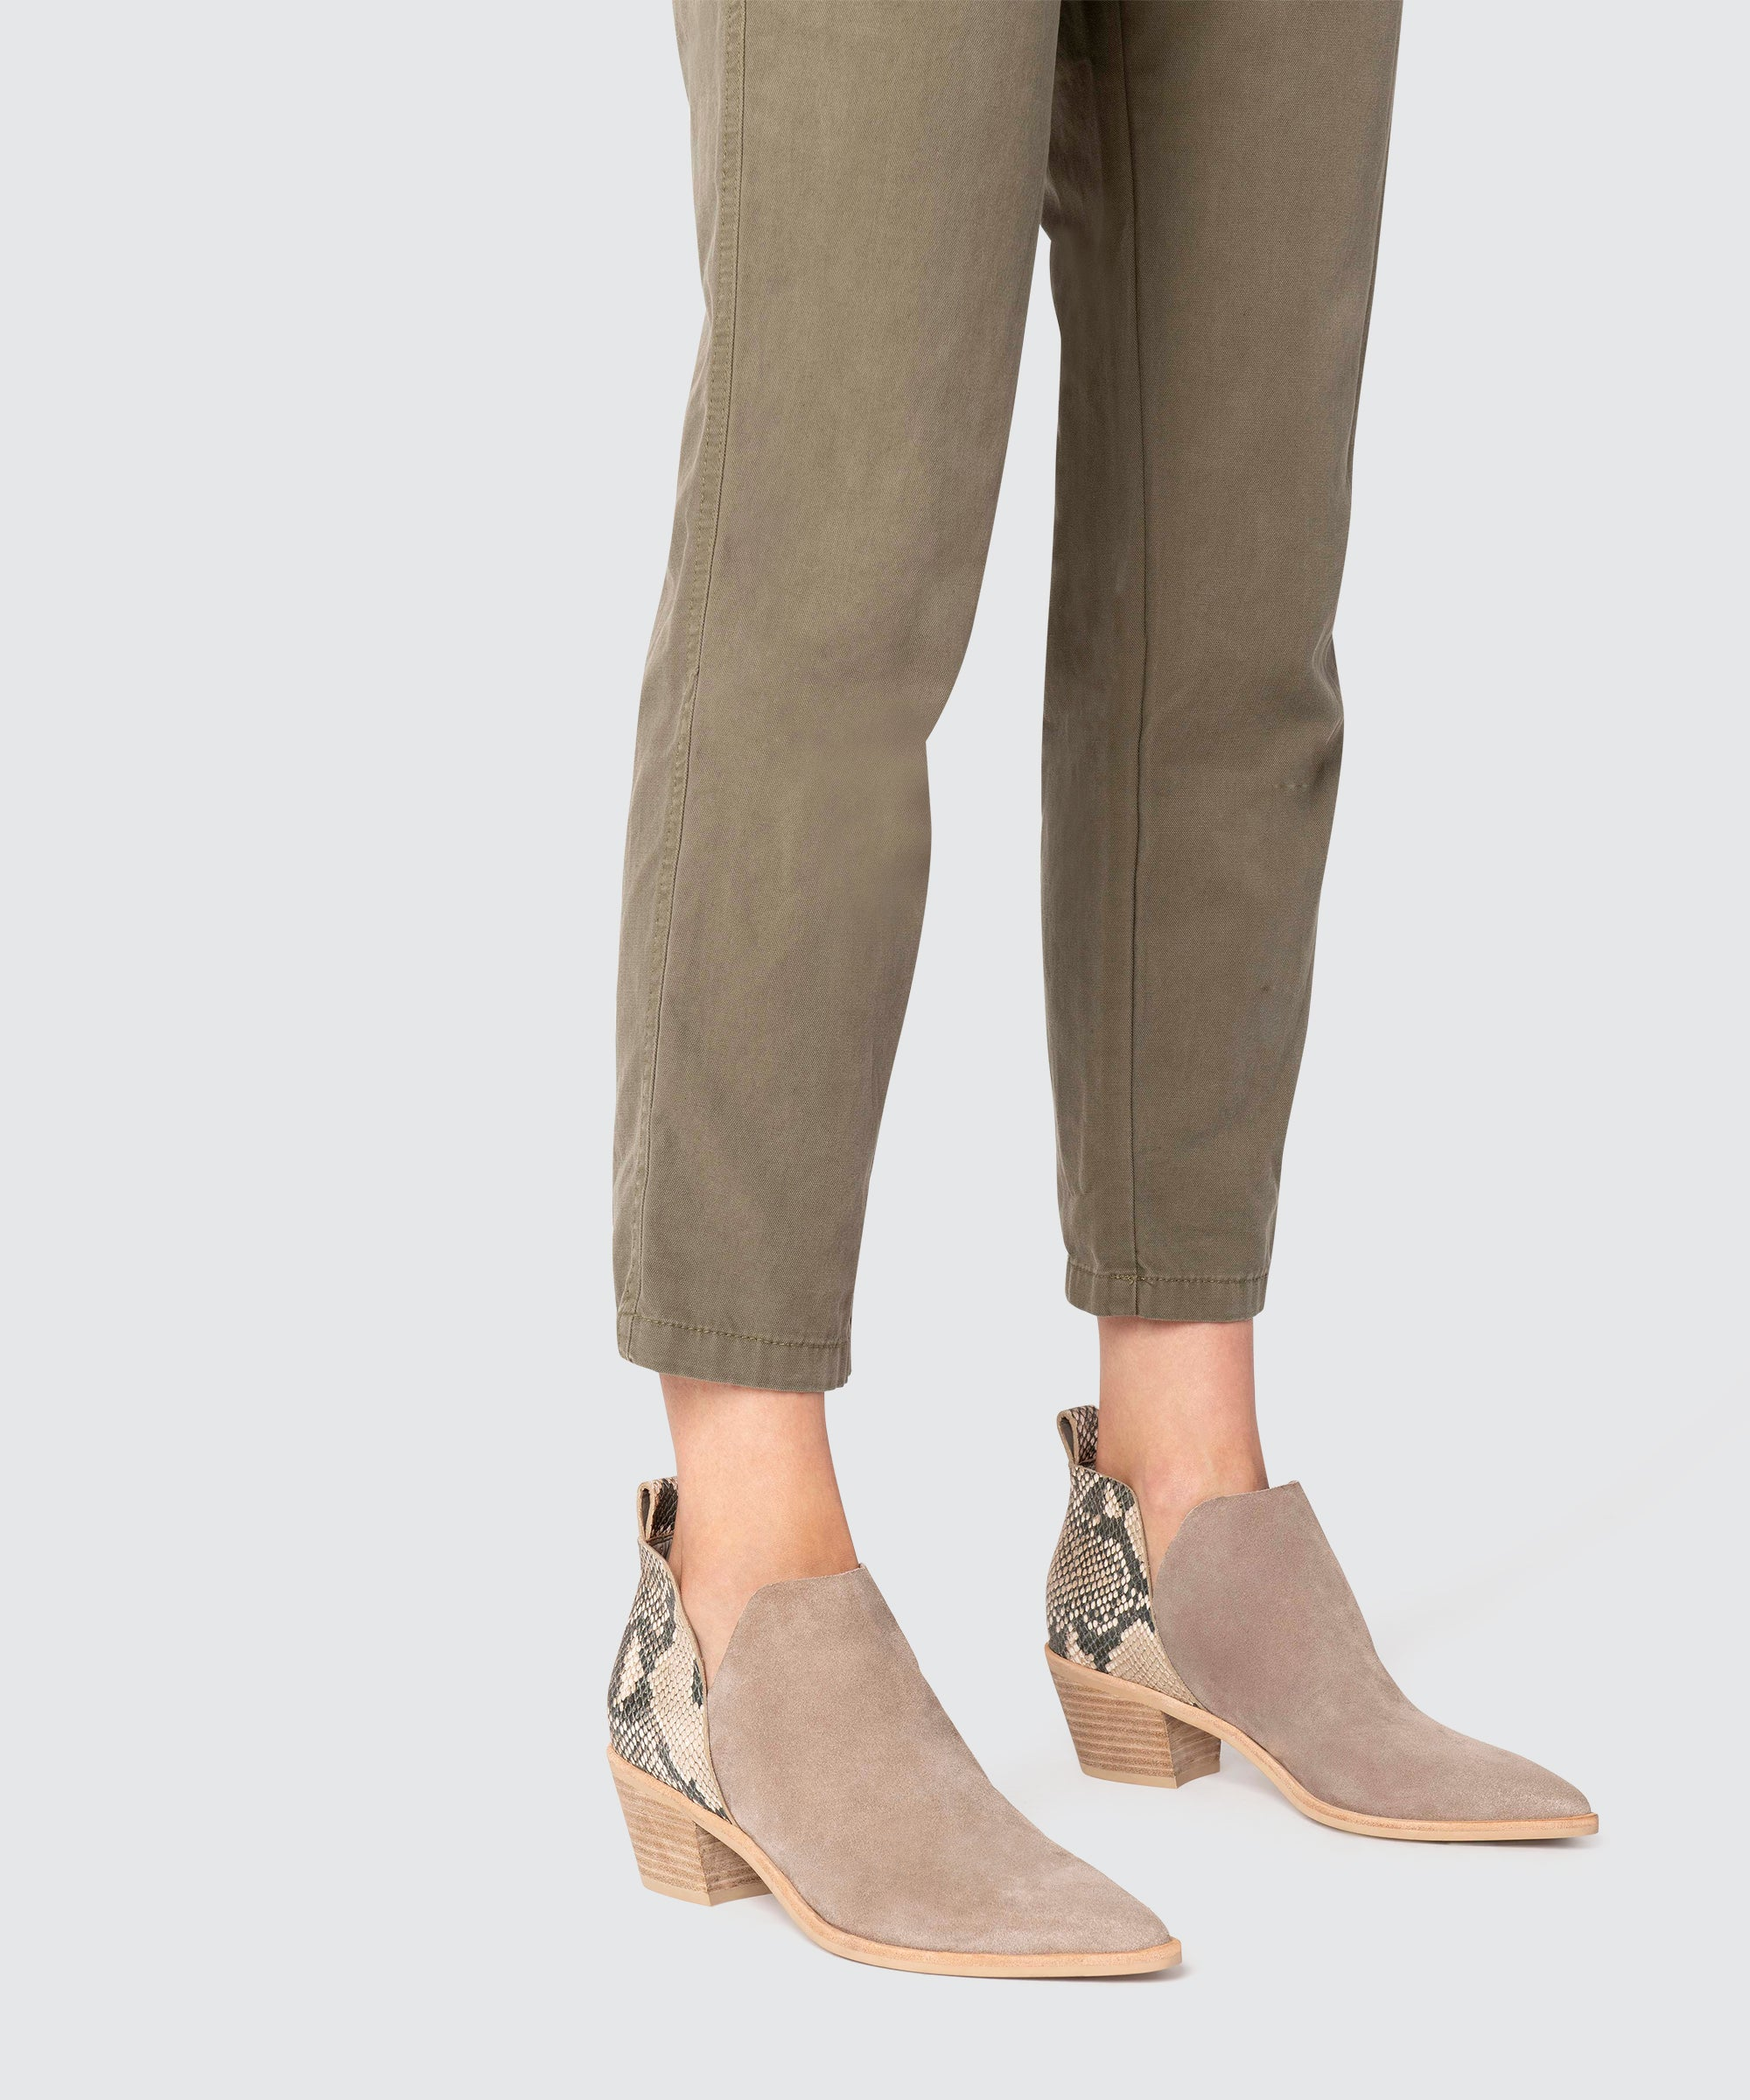 SONNI BOOTIES IN TAUPE SNAKE – Dolce Vita